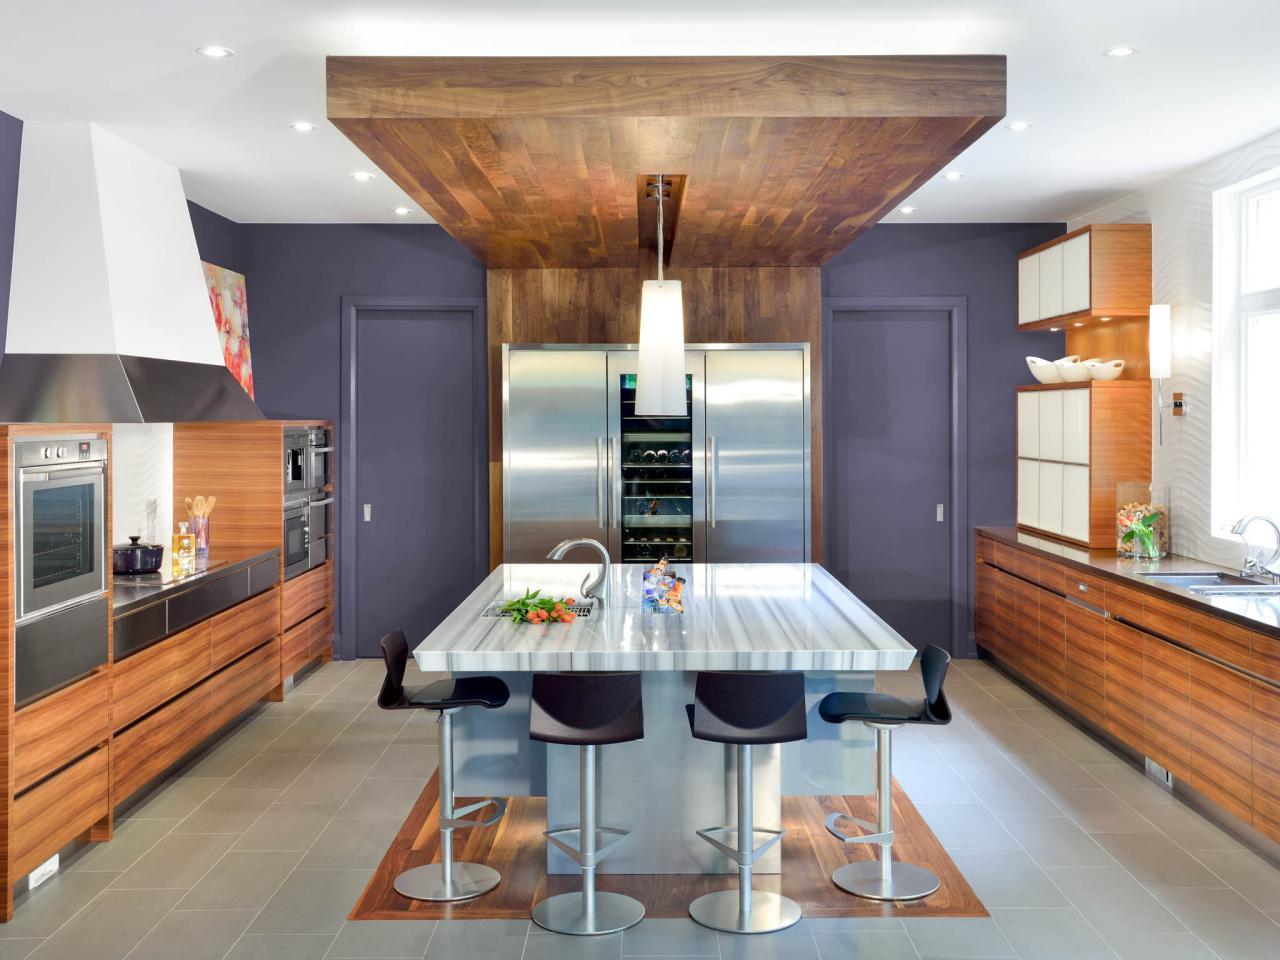 Knight Rider Pictures and Photos Getty Images Kitchen ceiling design photos